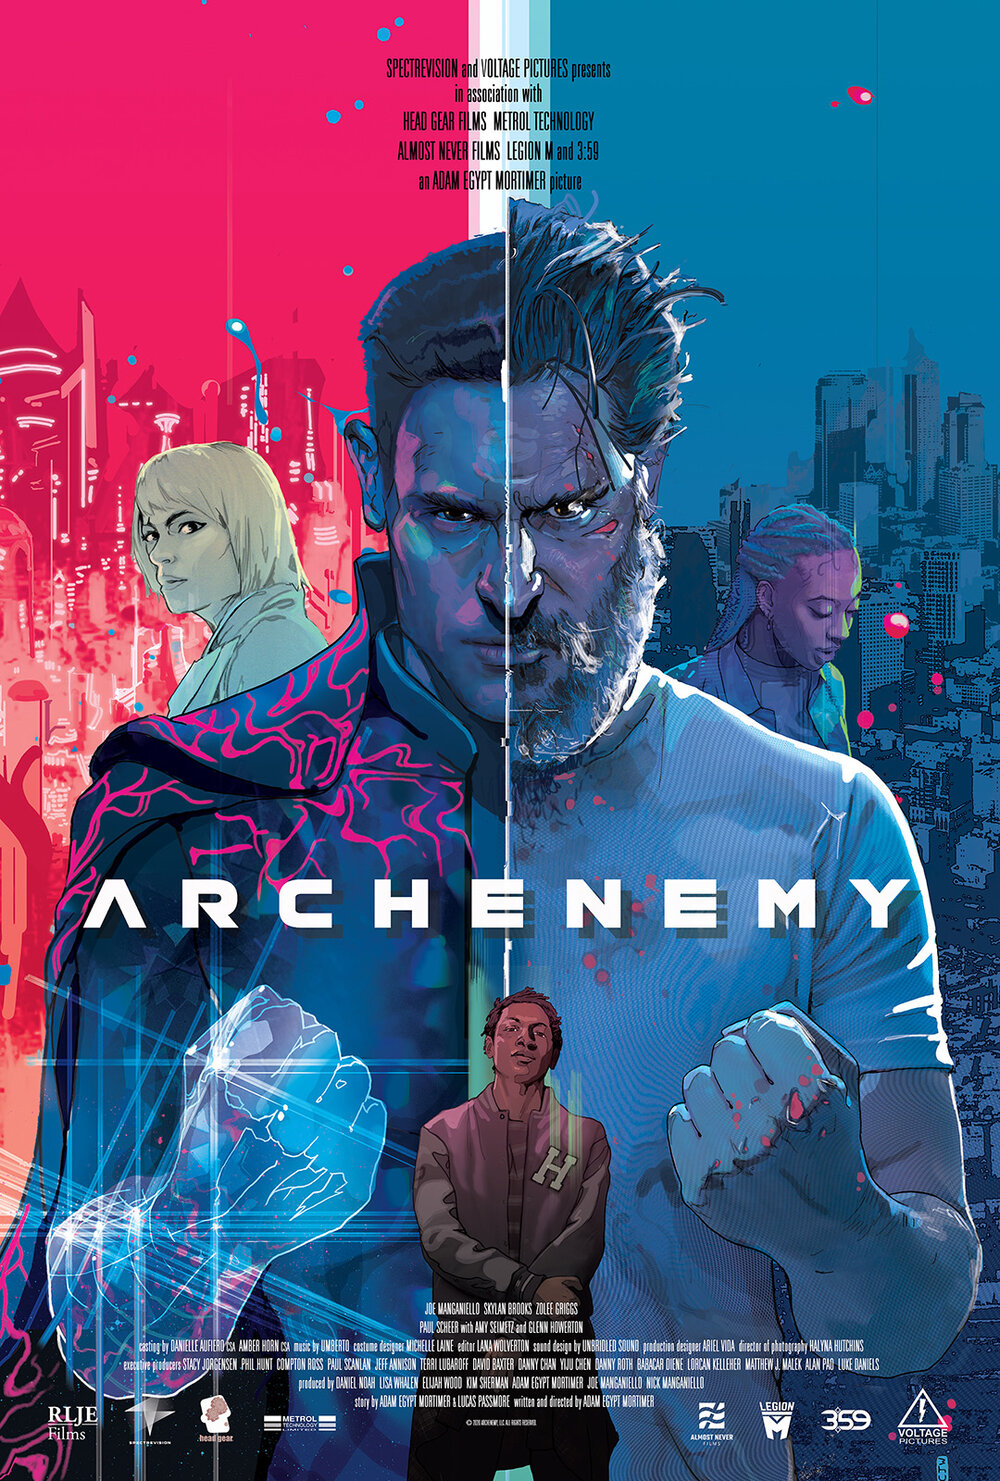 joe-manganiello-is-a-homeless-hero-from-another-dimension-in-trailer-for-archenemy2